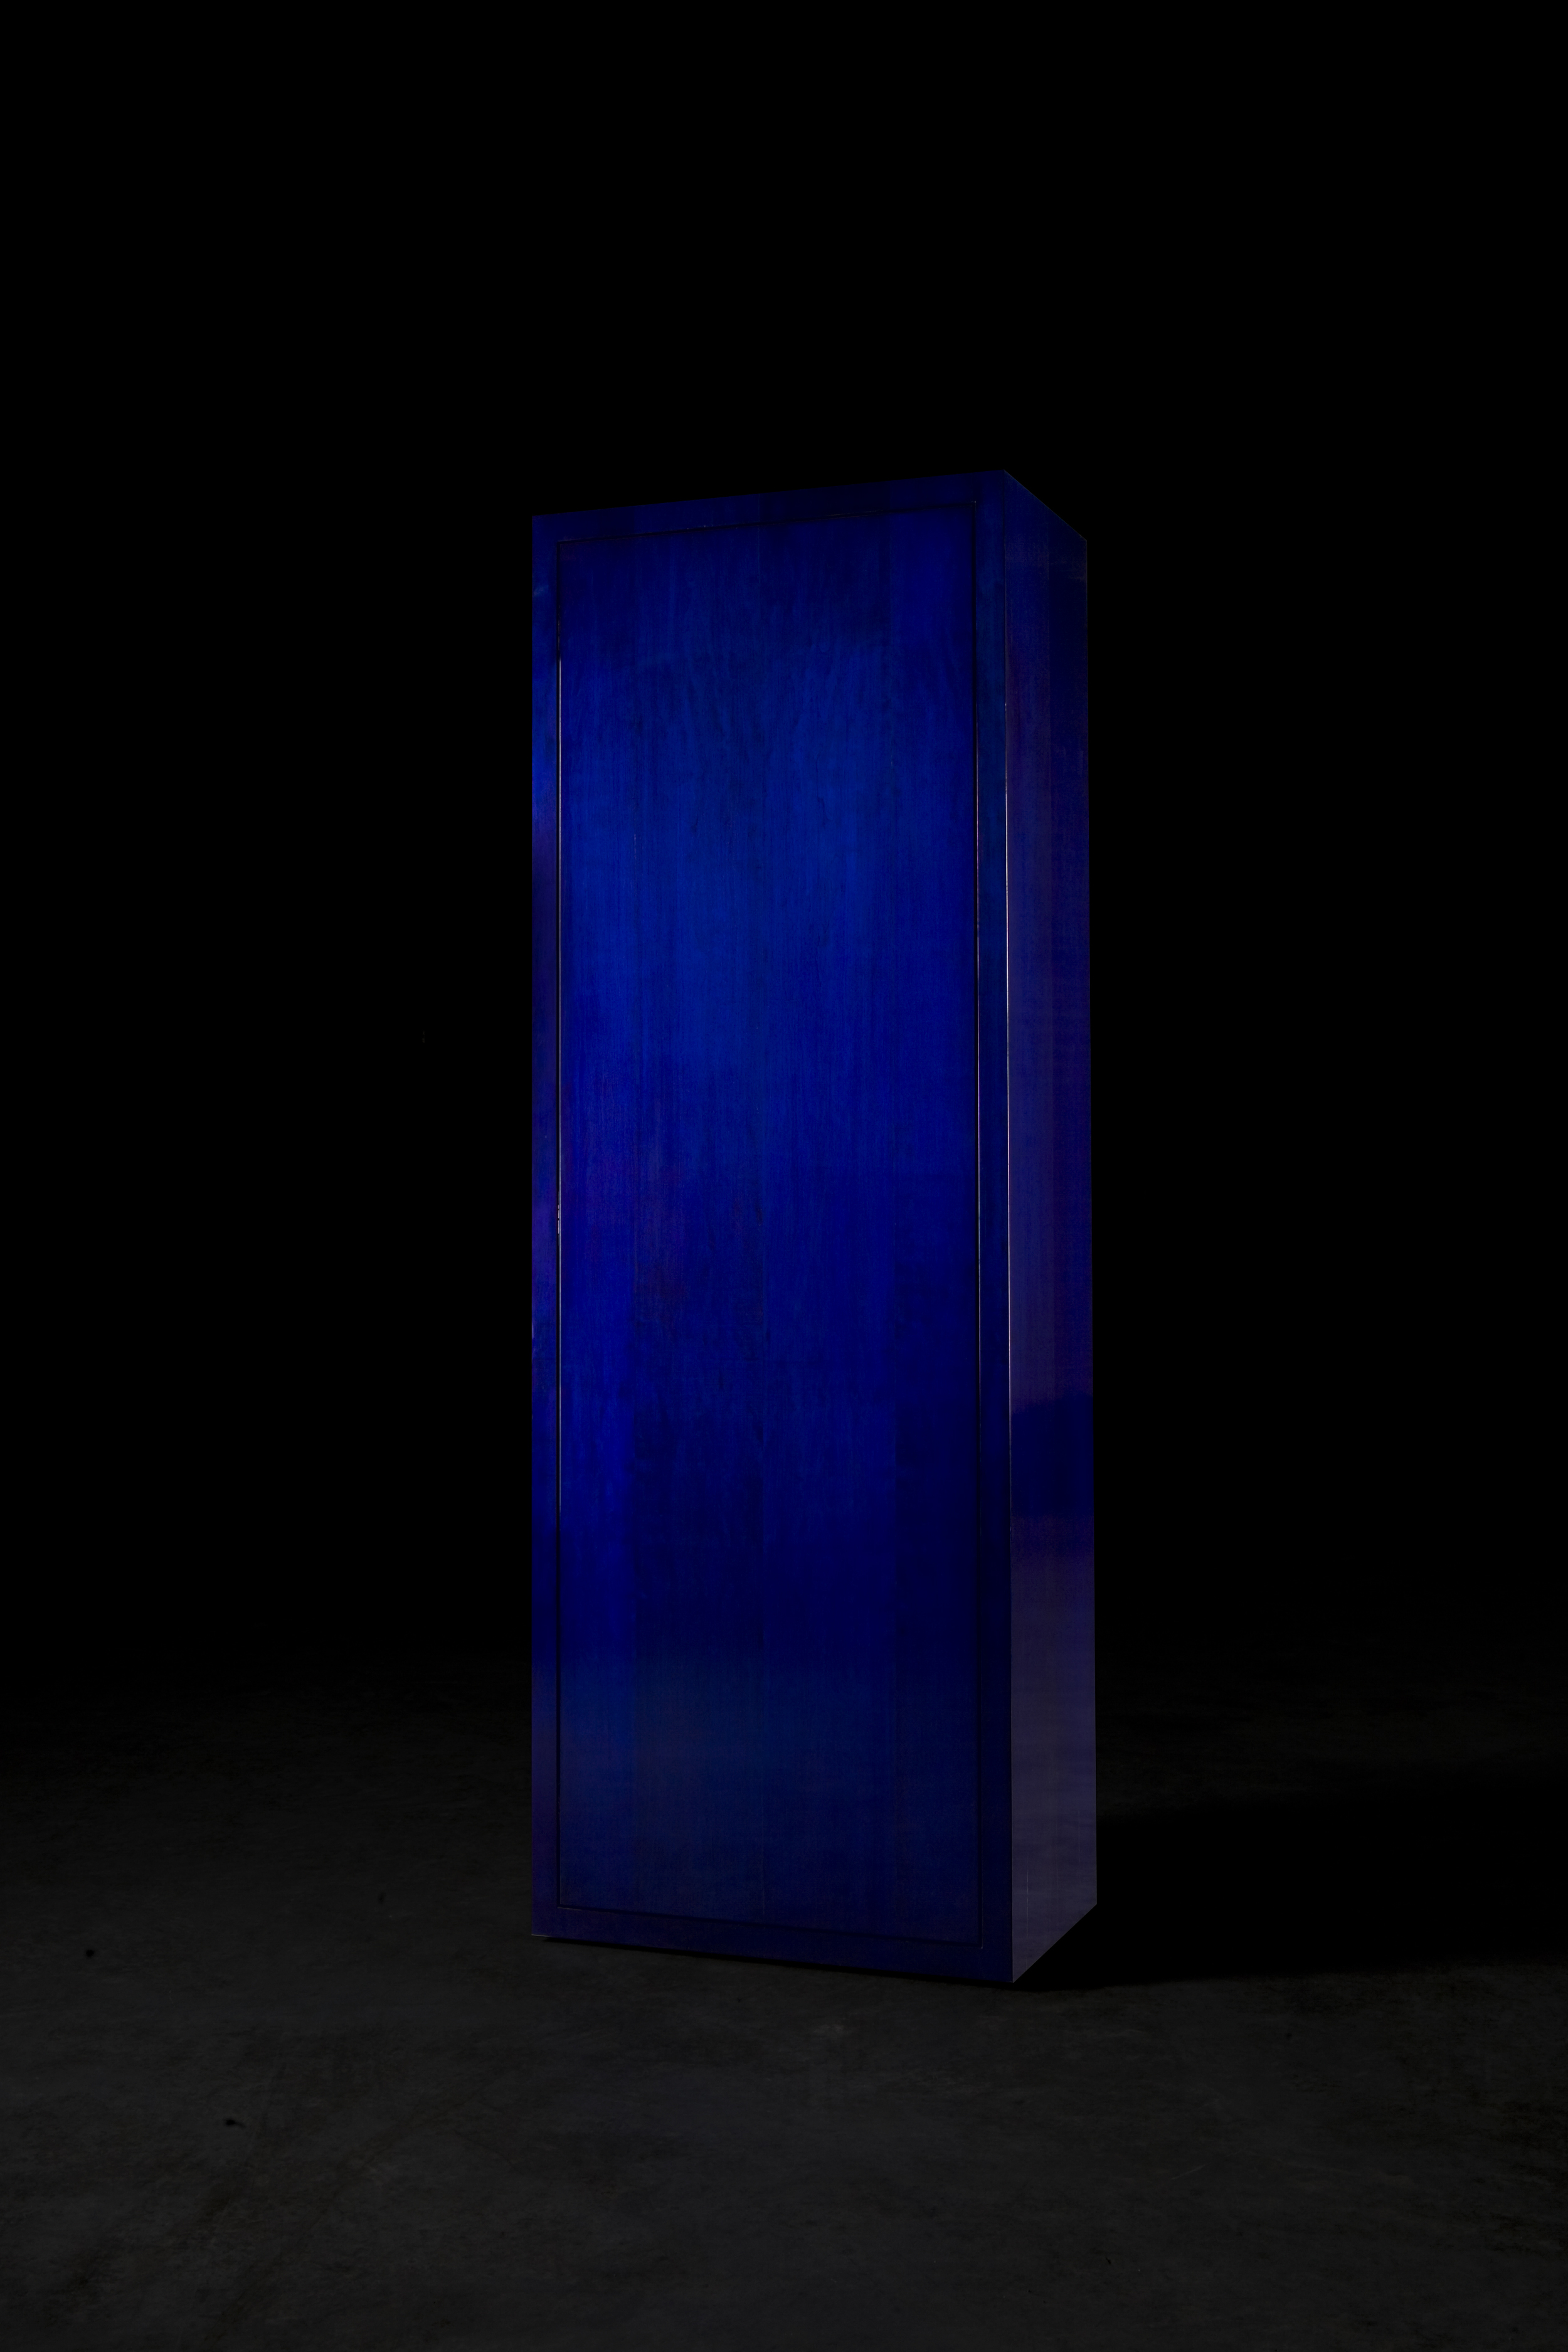 BiC Blue   Year : 2009  Materials : American maple veneer, BiC ink, French polish  Dimensions : 200 x 70 x 43 cm  Award :Winner of the Wallpaper Design Awards 2010 for the Best Use of Color